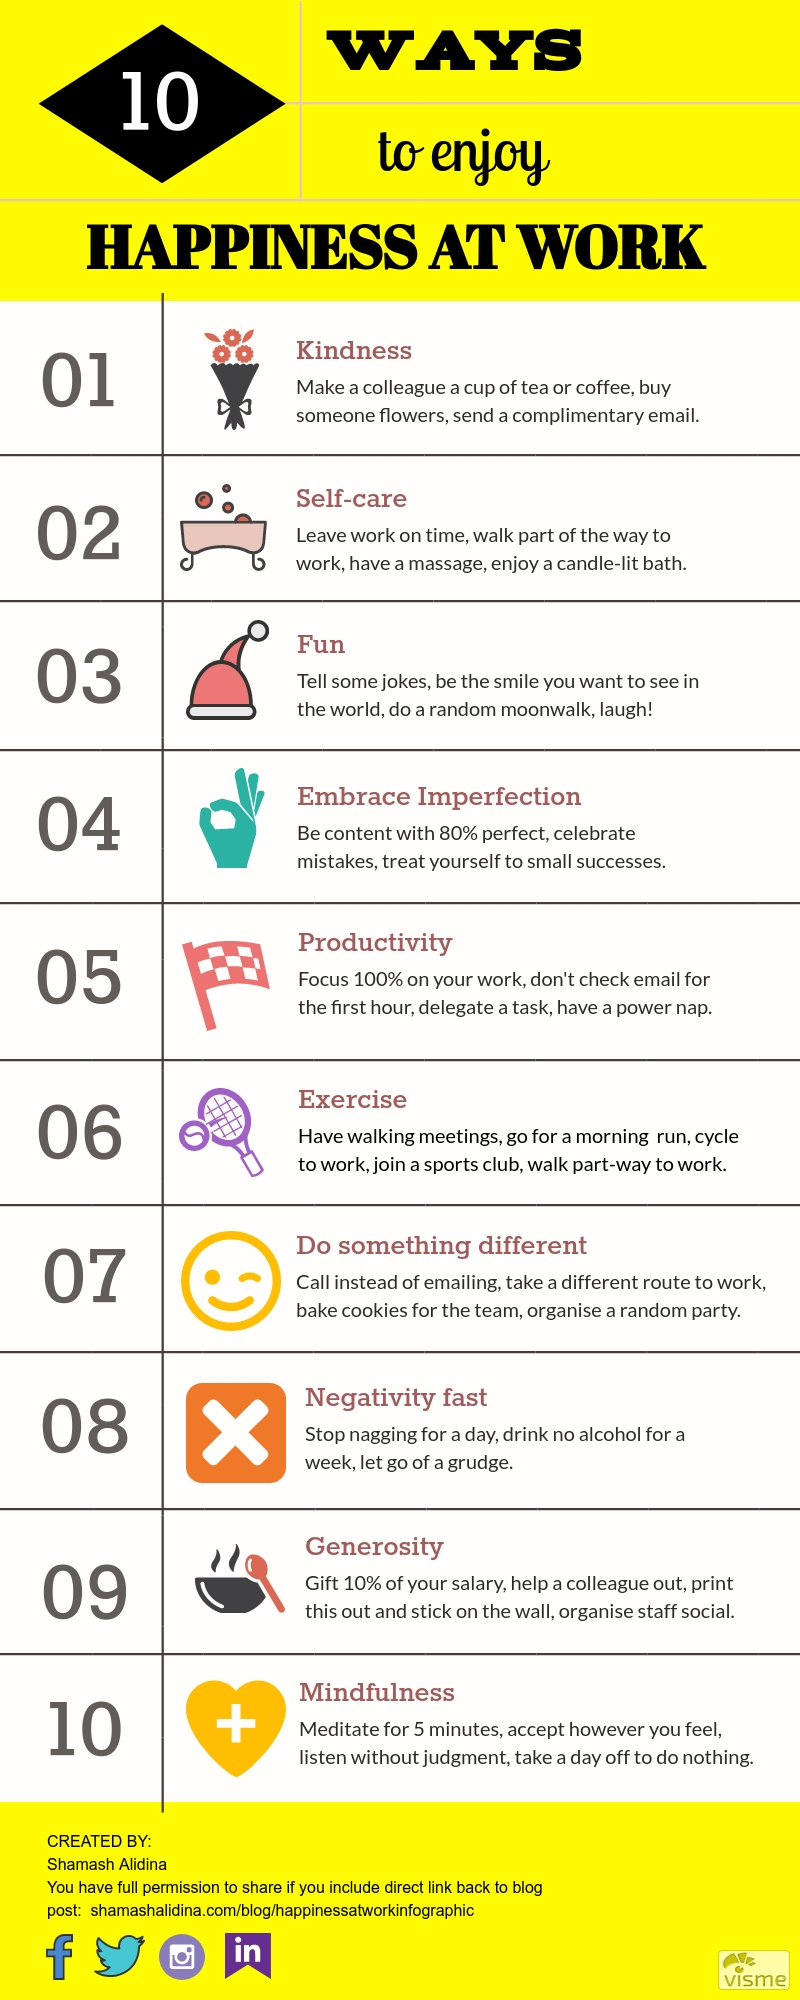 Happiness-at-work infographic.jpg